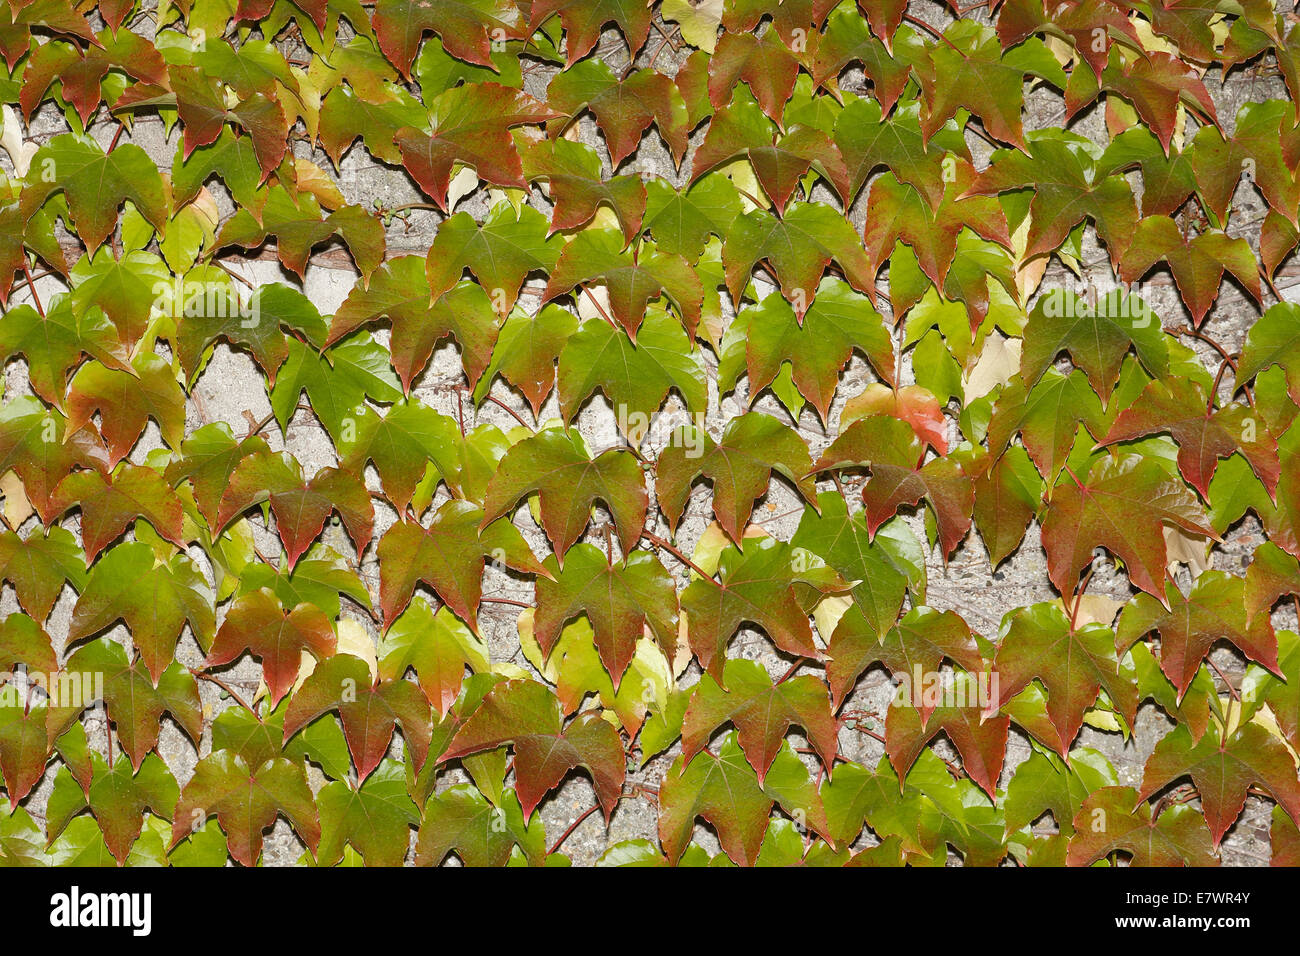 Ivy Climbing On The Wall Of A House Stock Photos & Ivy Climbing On ...